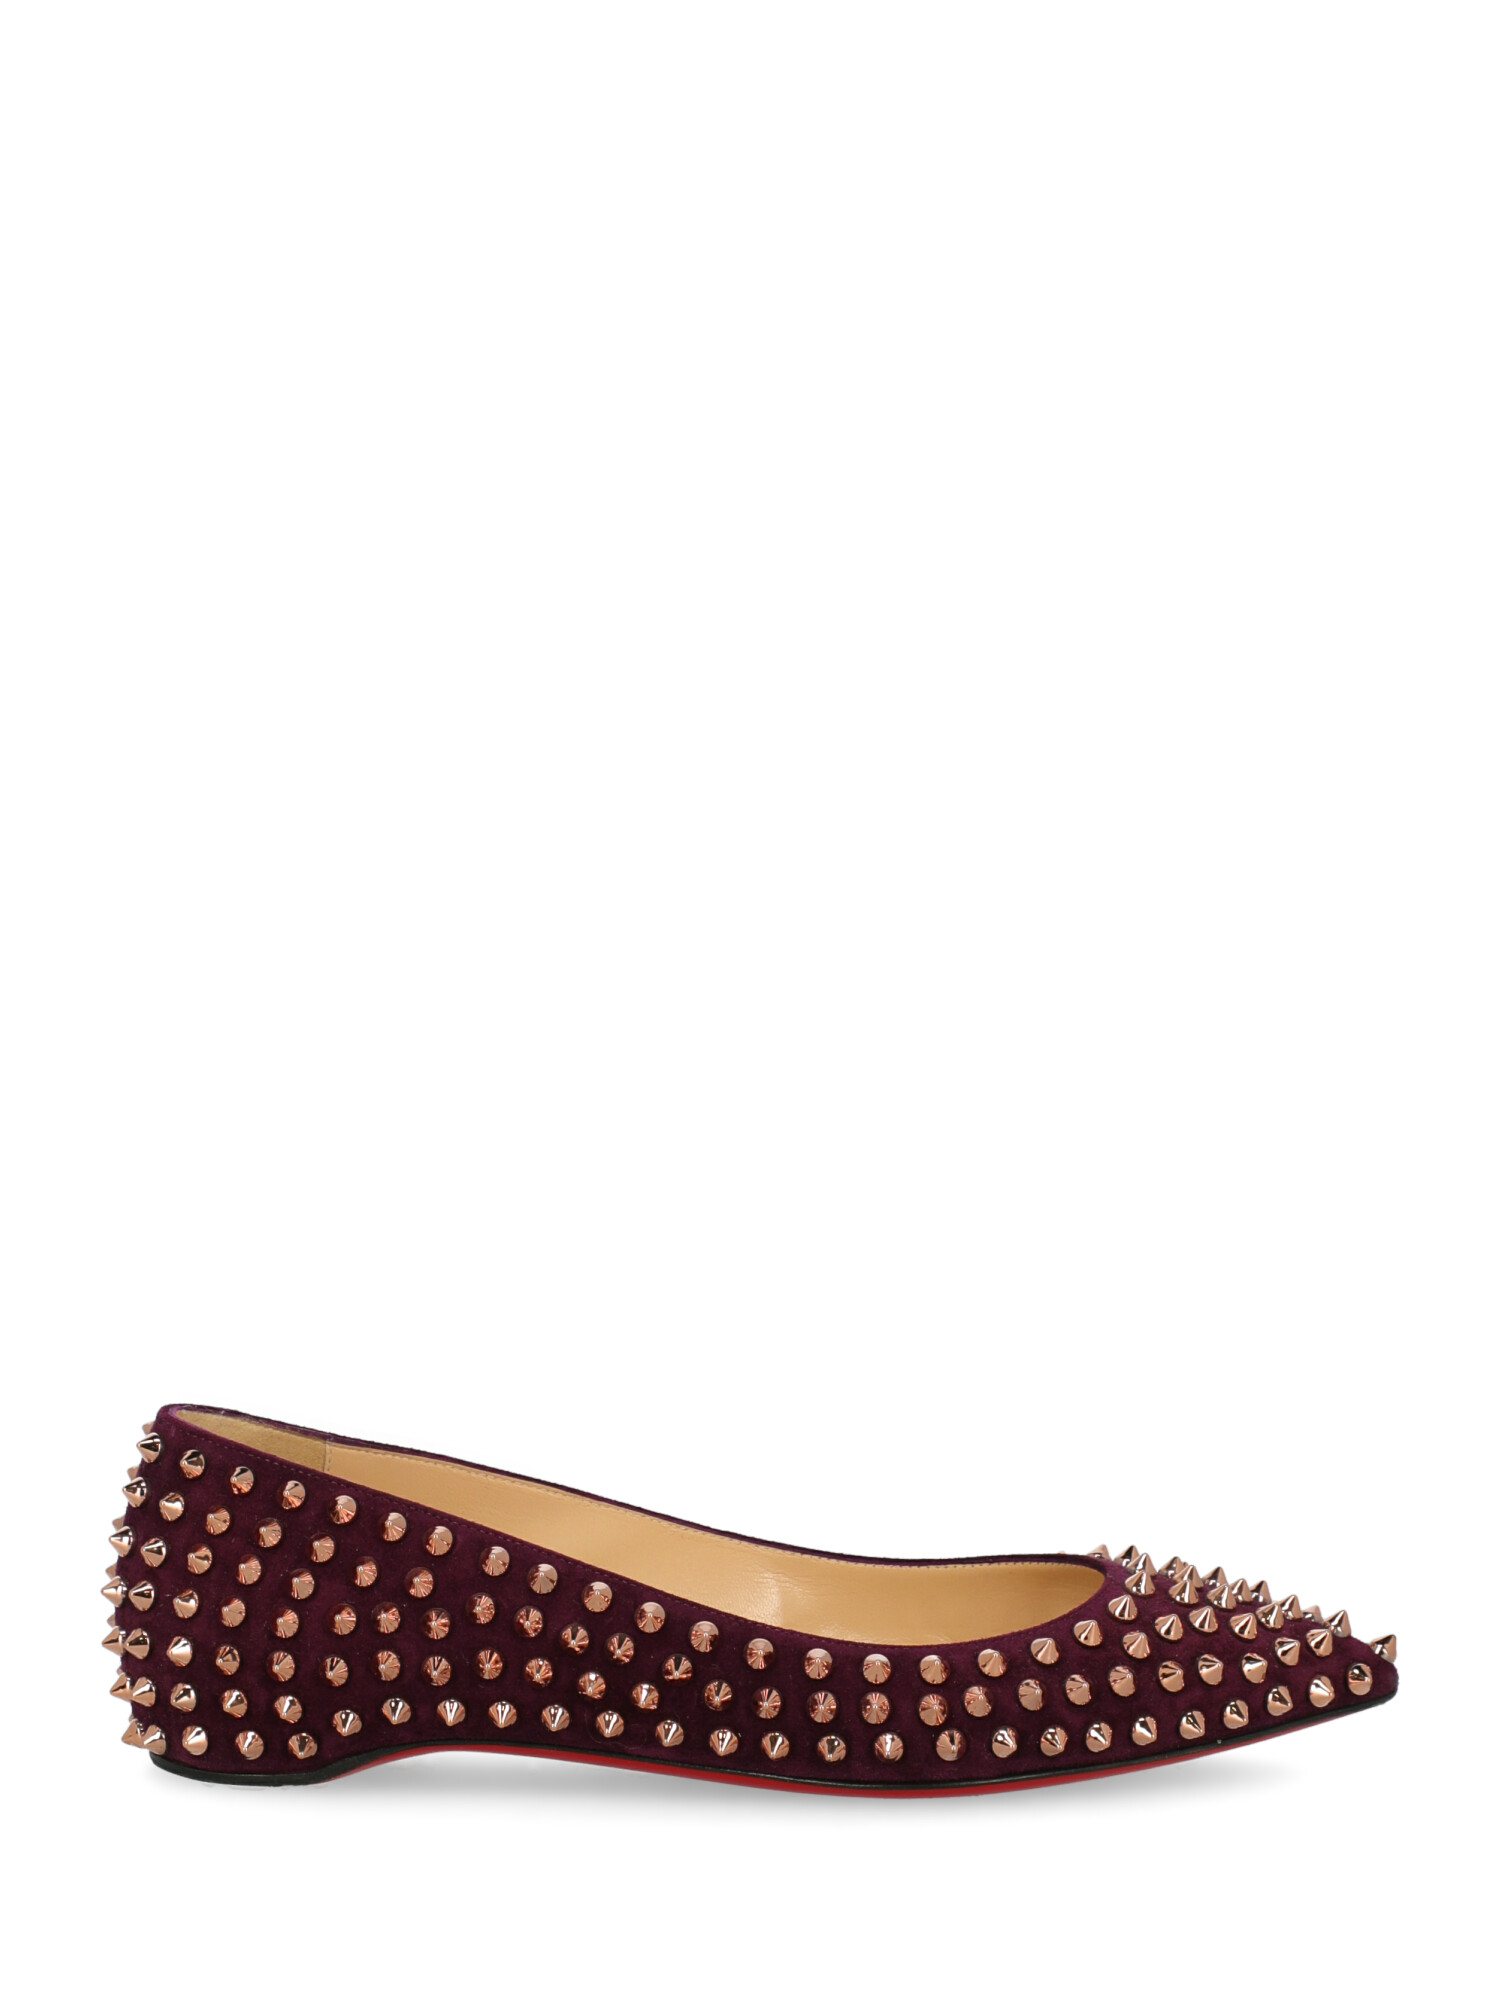 Pre-owned Christian Louboutin Ballet Flats In Purple